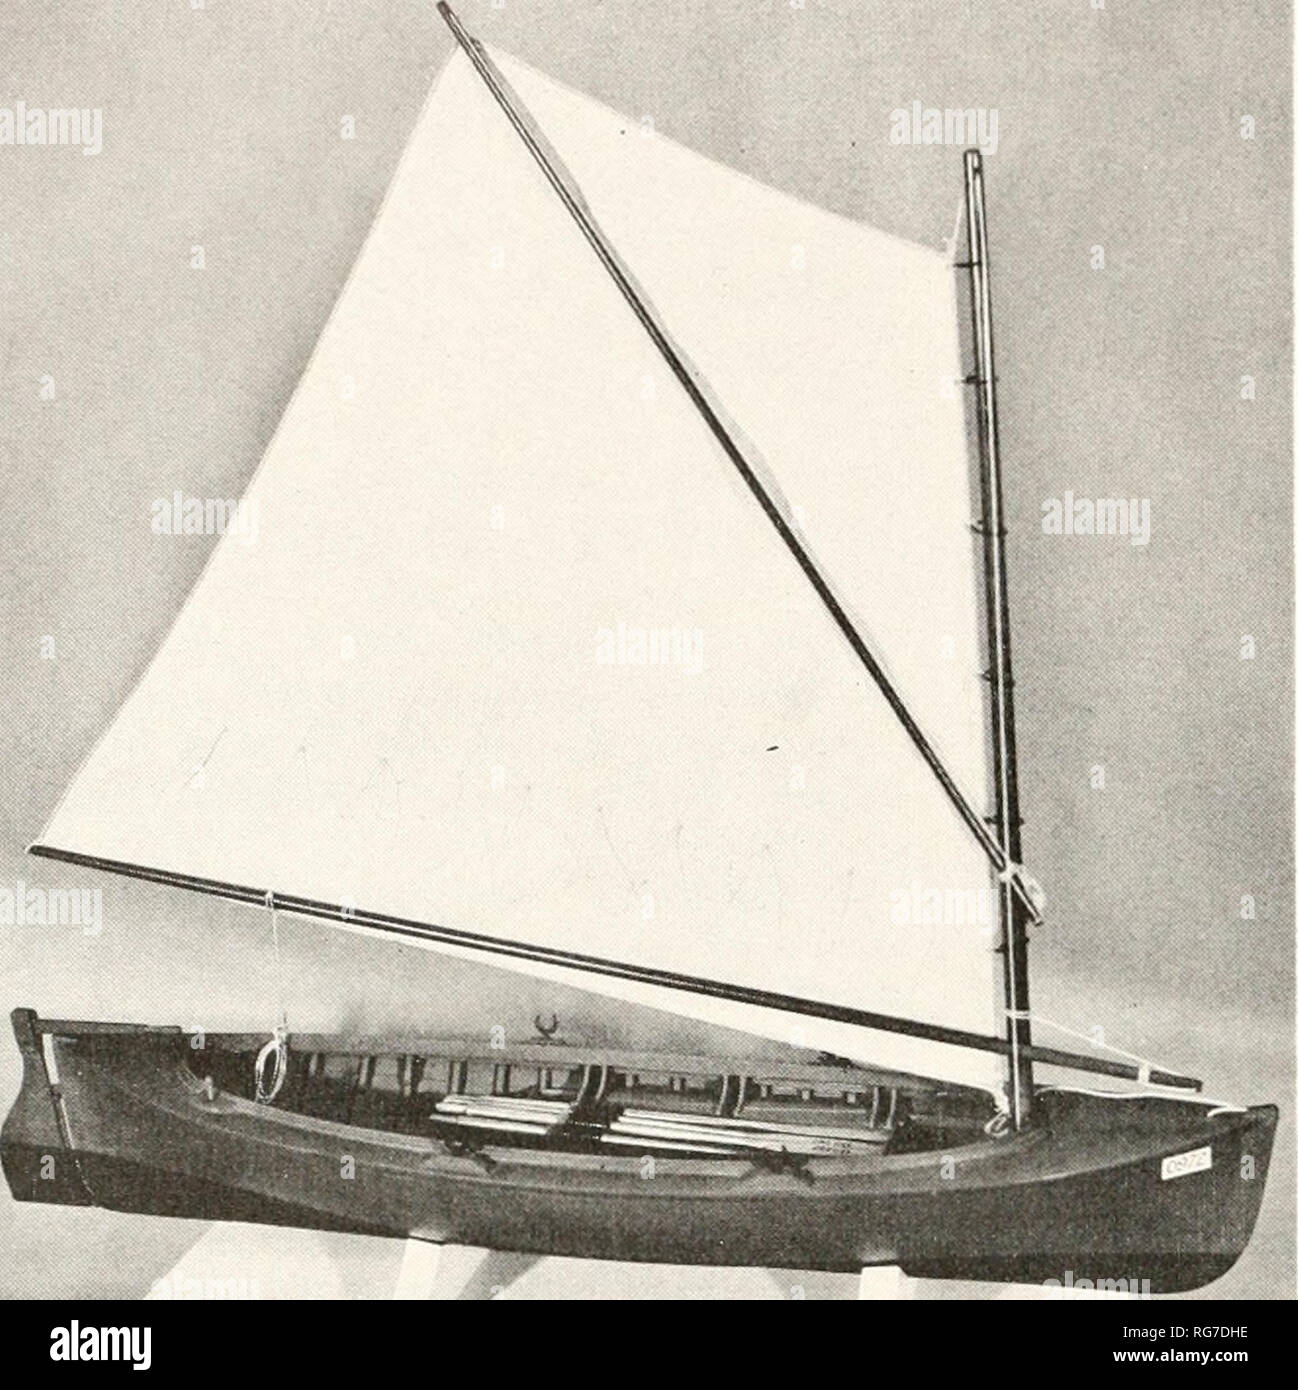 . Bulletin - United States National Museum. Science. Columbia River Salmon Boat of tlie type developed about 1885. Rigged model USNM 285033. (Smithsonian photo 4^606.) BILOXI FISHING LAUNCH, 193337 Builder's Half-Model, usnm 211230 Seacoast No. 1, Dr. Ki/lgis, 'Kemuui B. A number of fishing launches were built at Biloxi. Mississippi, from this model by W. H. Bowen between 1933 and 1937. Among these were Seacoast No. 7, Dr. h'ulgis, and Rcmma B. This class of fishing launch worked in sheltered waters. The half-model shows a common type of fishing launch having a caravel-planked hull the keel ra - Stock Image